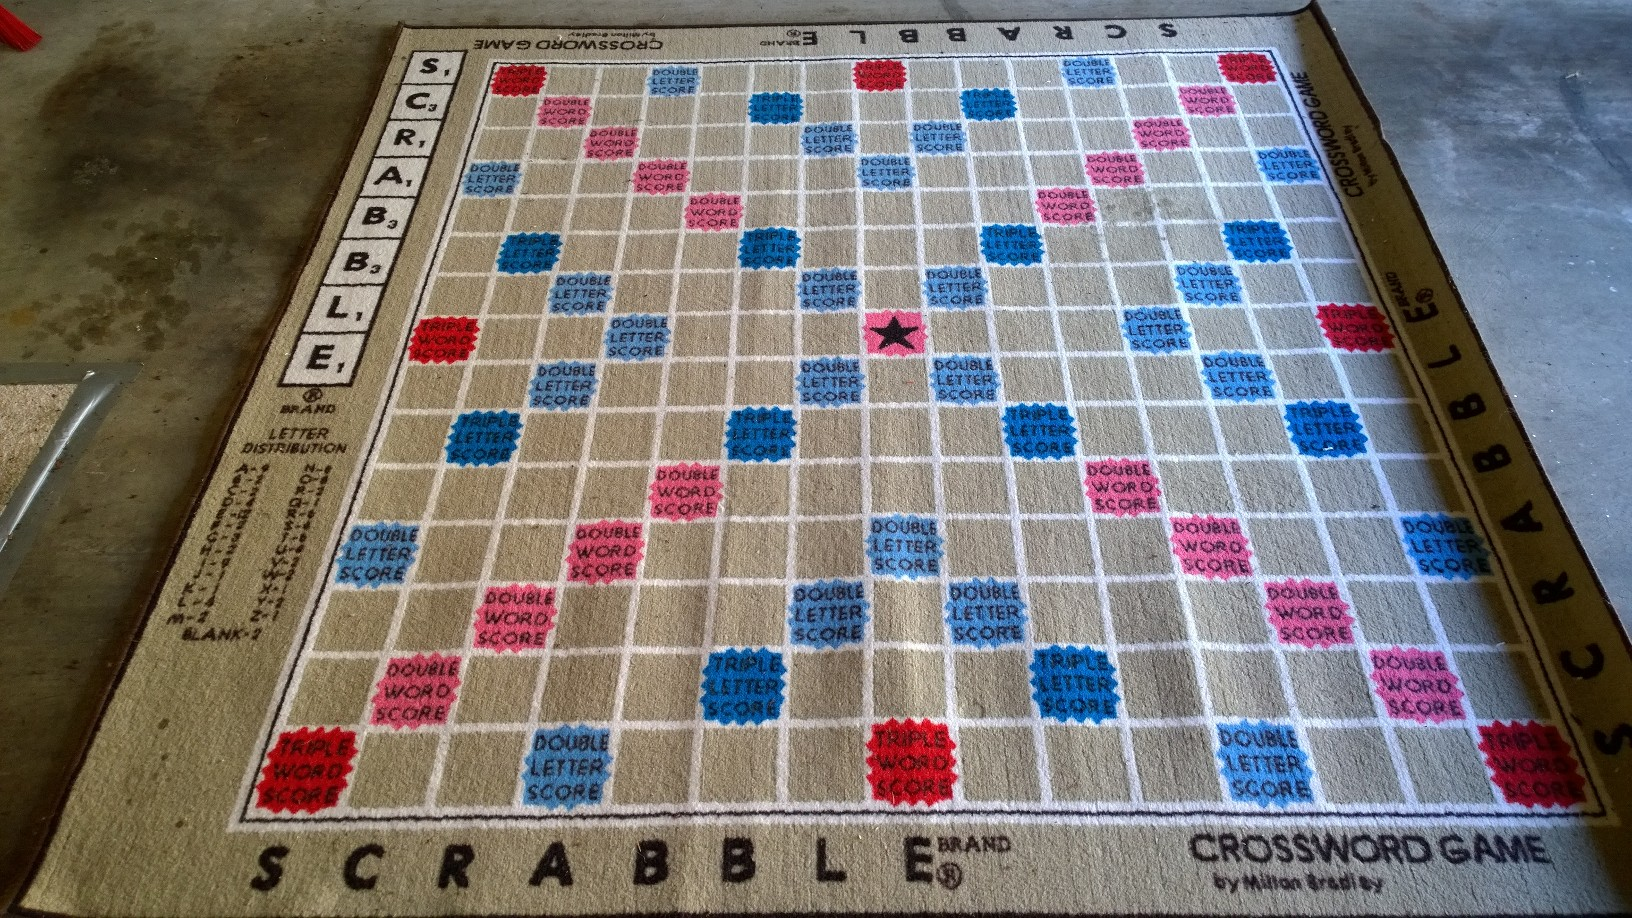 Scrabble%20rug%20bare%20cleaner scrabble rug